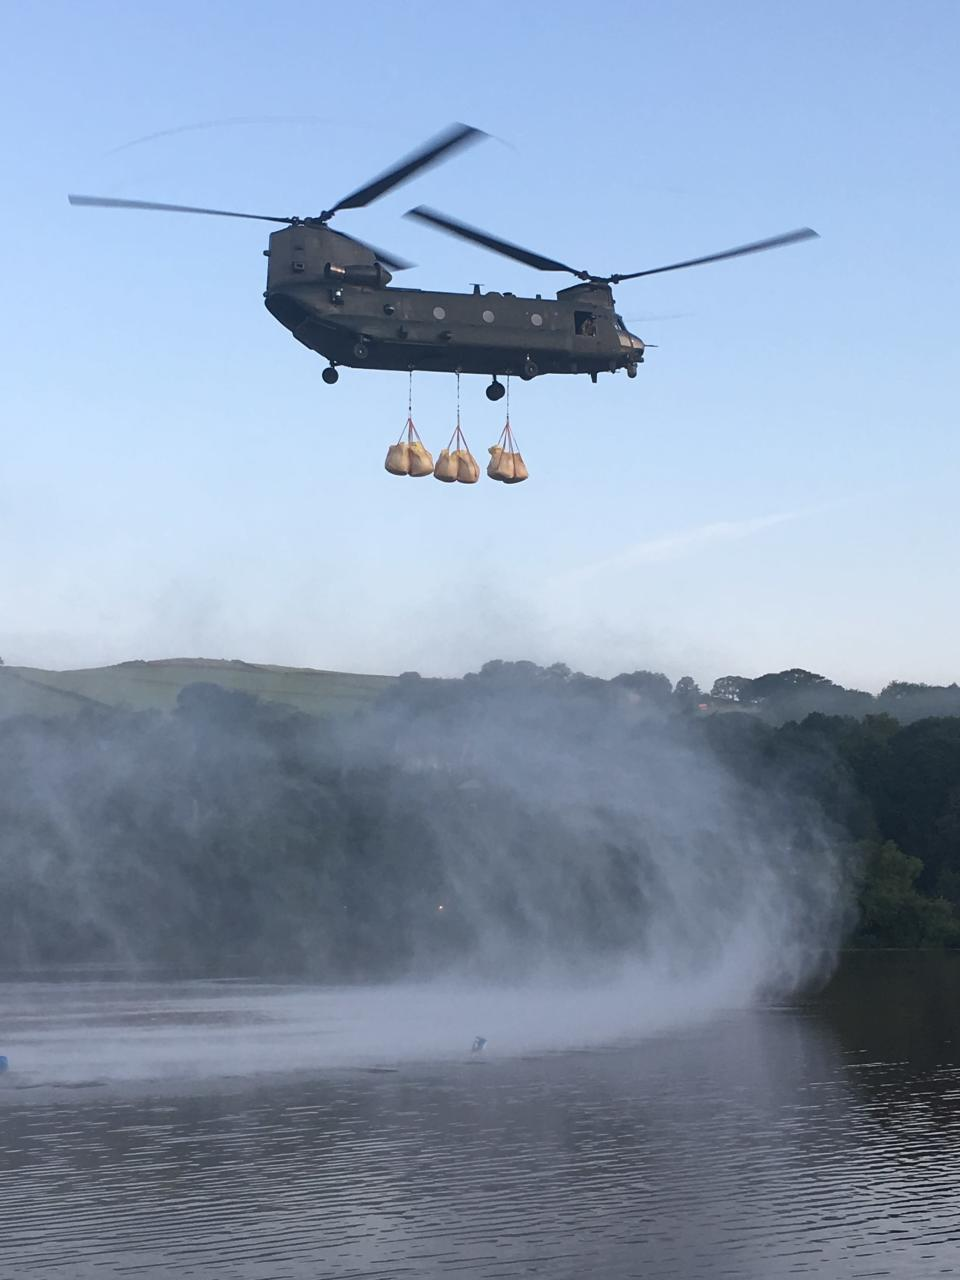 """In this image released by the Ministry of Defence, an RAF Chinook helicopter flies in sandbags to help repair the dam at Toddbrook reservoir near the village of Whaley Bridge in Derbyshire, England, Friday, Aug. 2, 2019. A British military helicopter dropped sandbags Friday to shore up a reservoir wall as emergency services worked frantically to prevent a rain-damaged dam from collapsing. Engineers said they remain """"very concerned"""" about the integrity of the 19th-century Toddbrook Reservoir, which contains around 1.3 million metric tons (1.5 million (U.S tons) of water. (Gary Lane/Ministry of Defence via AP)"""